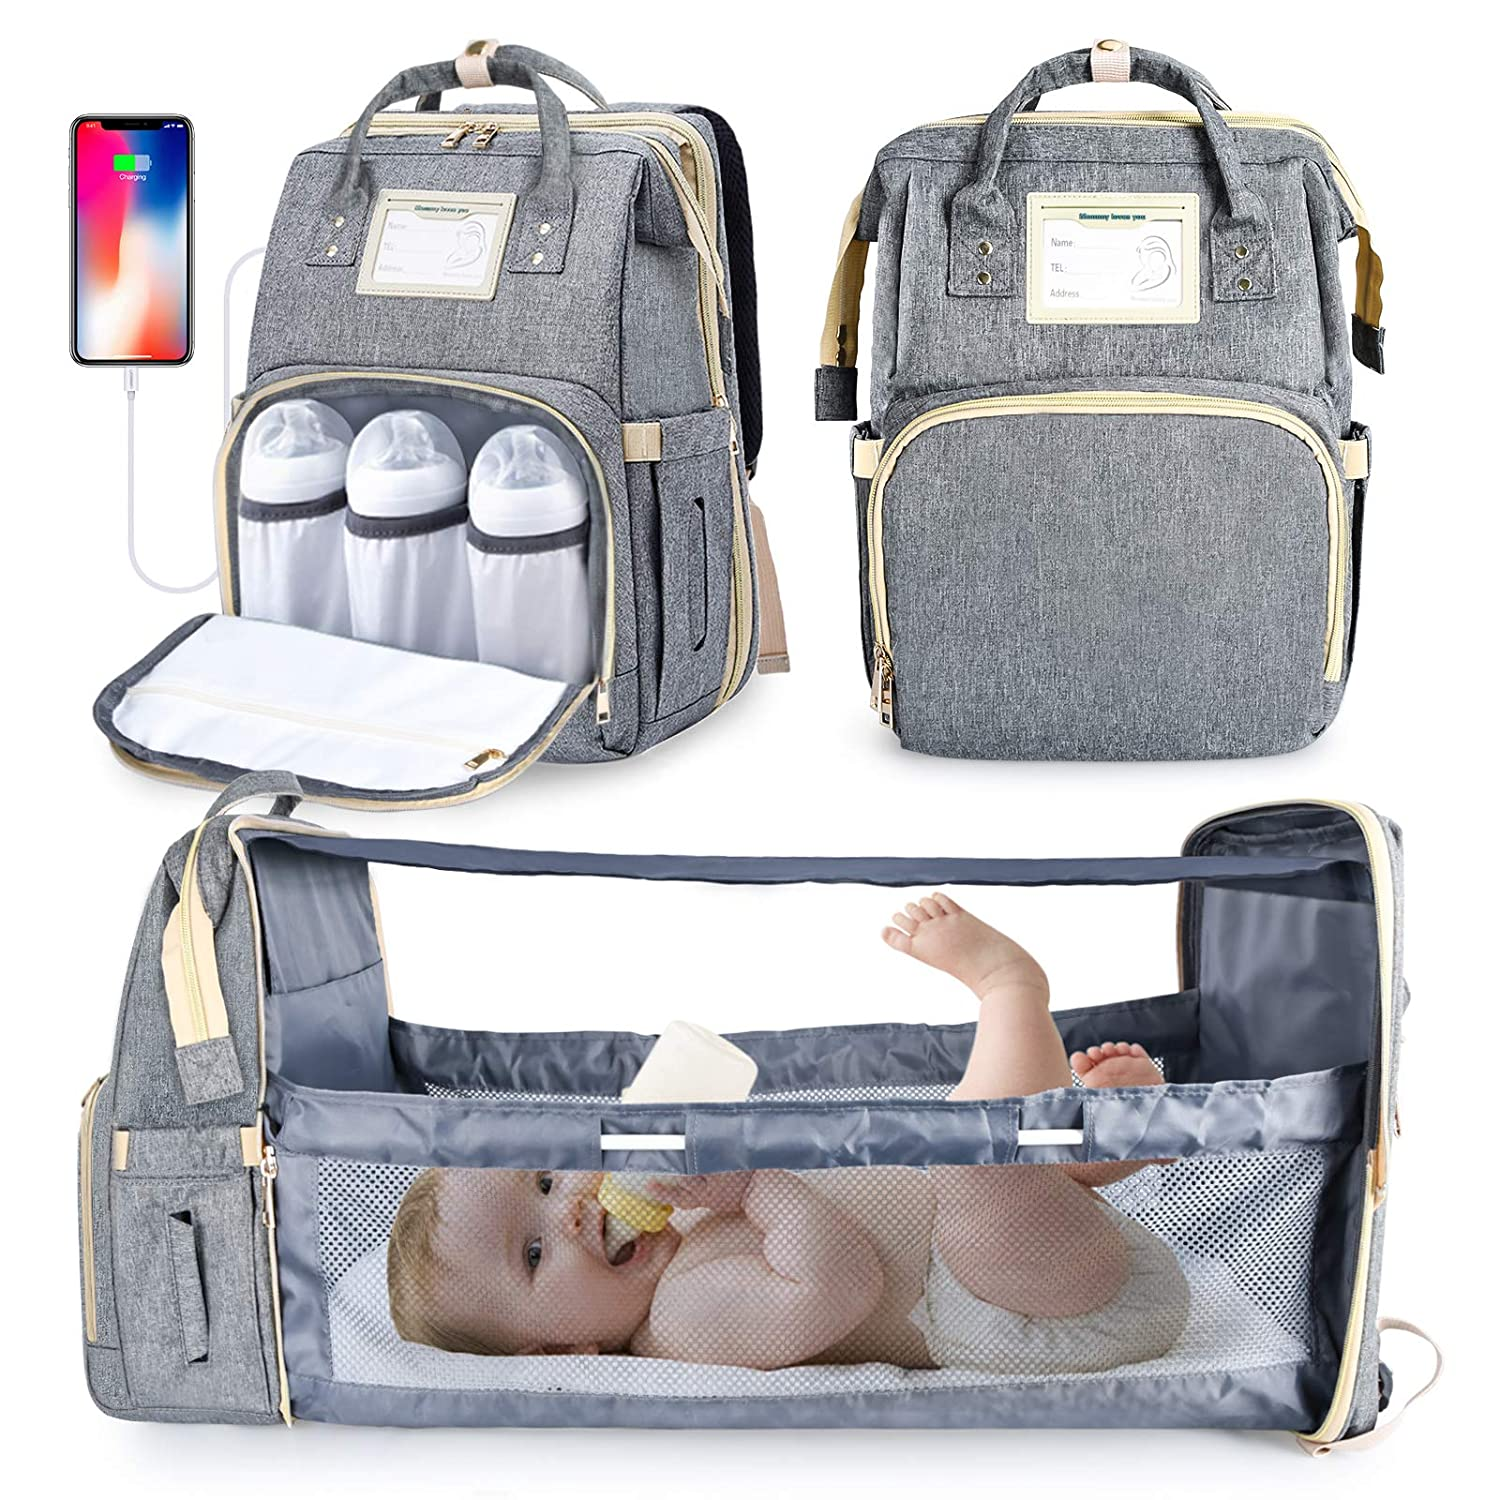 Beinhome Baby Diaper Bag Backpack with Changing Station Diaper Bags for Baby Bags for Boys Girls, Portable Baby Crib and Insulated Pocket, Large Capacity Baby Bag with Foldable Baby Bed